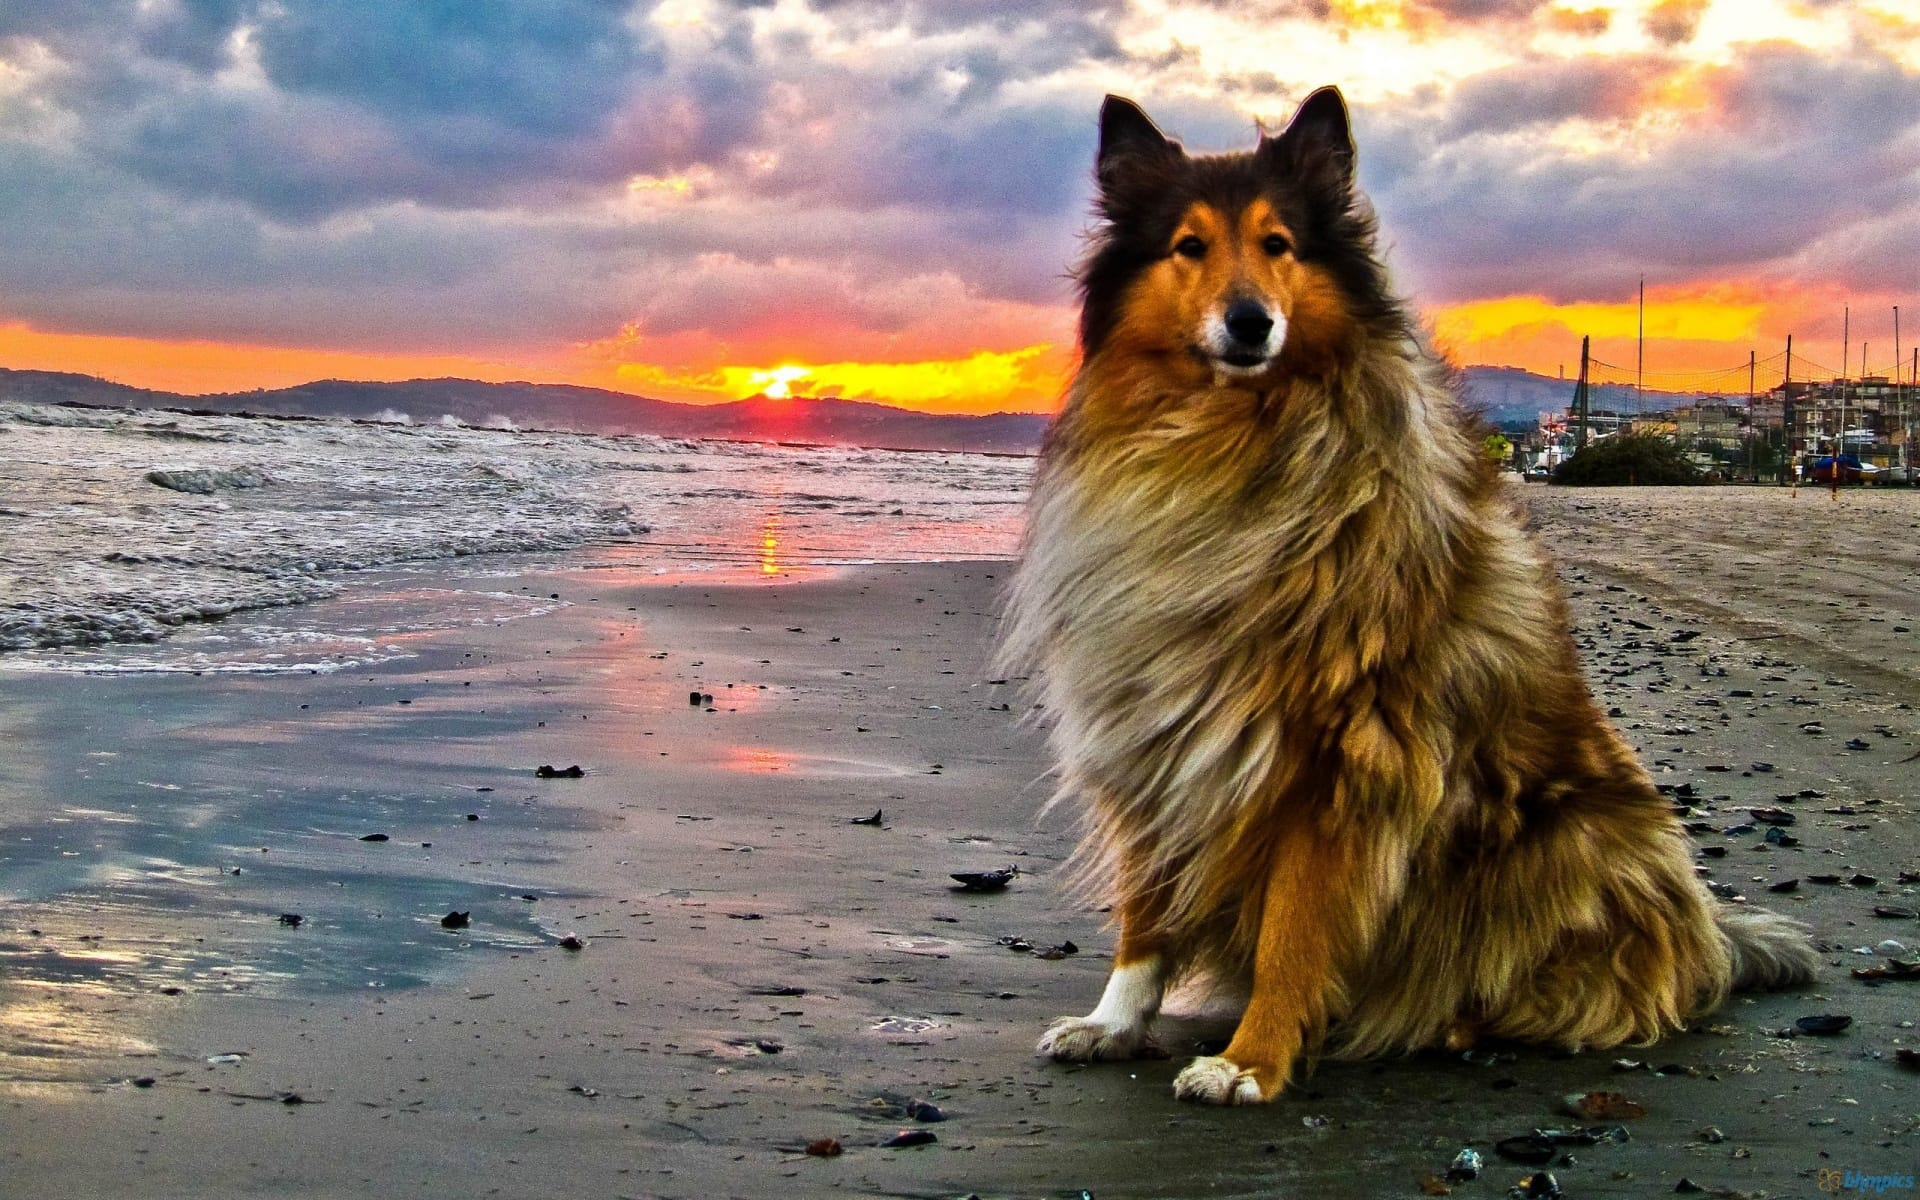 herding-dog-on-beach-at-sunset-232308